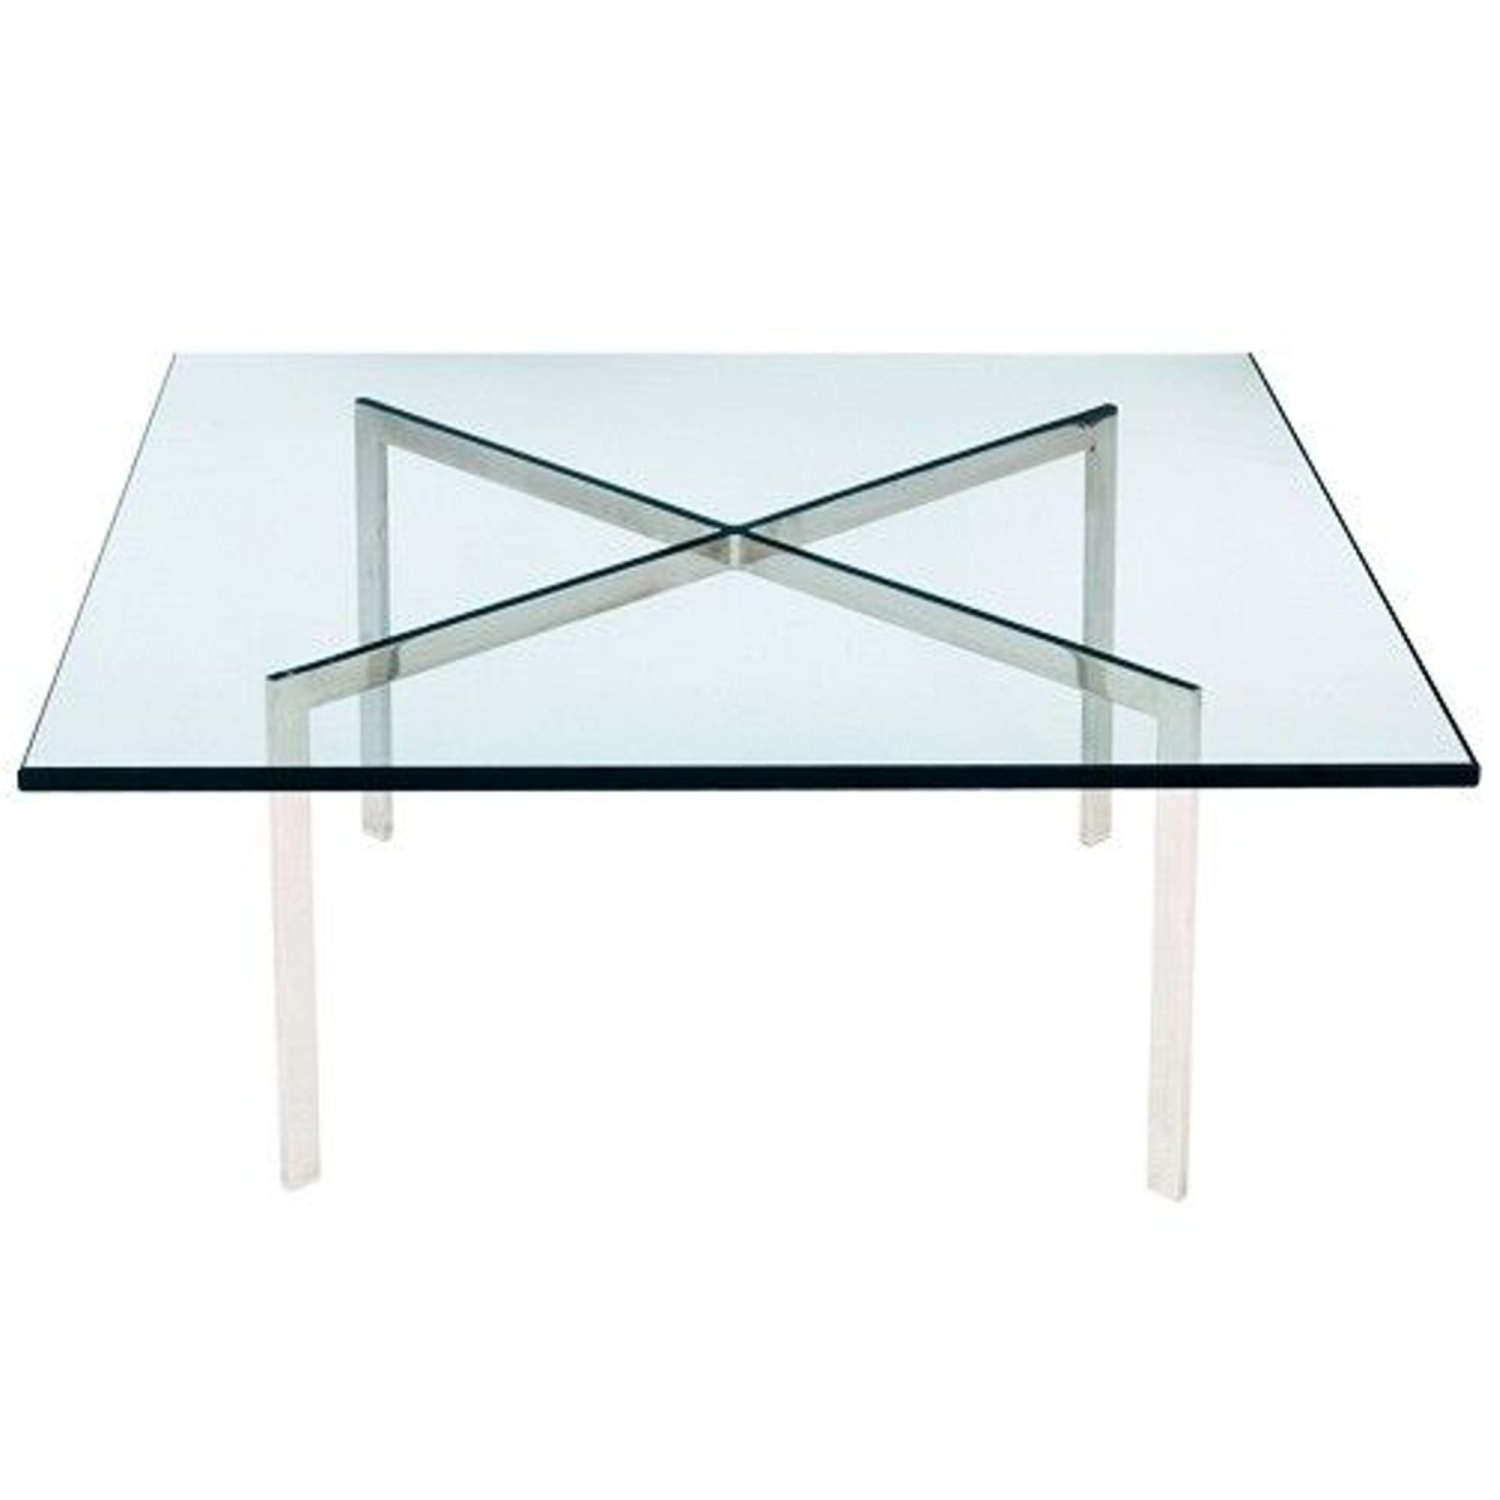 Coffee Table In Stainless Steel Frame & Glass Top - image-2